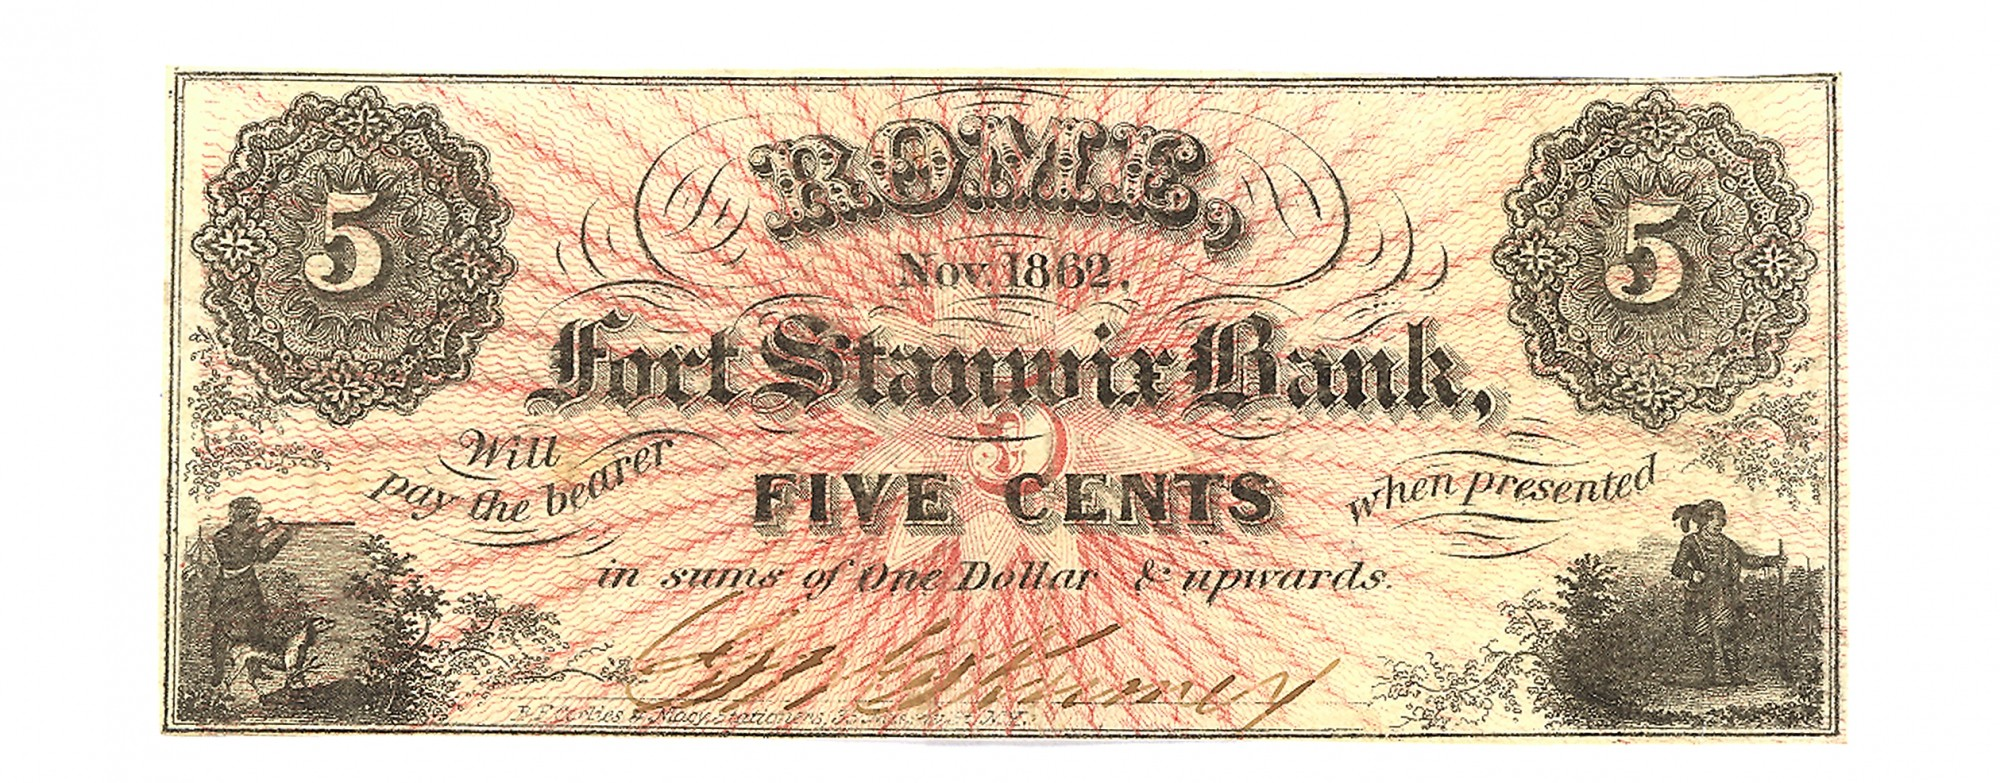 THE FIRST STANWICK BANK, ROME, NEW YORK $.05 NOTE